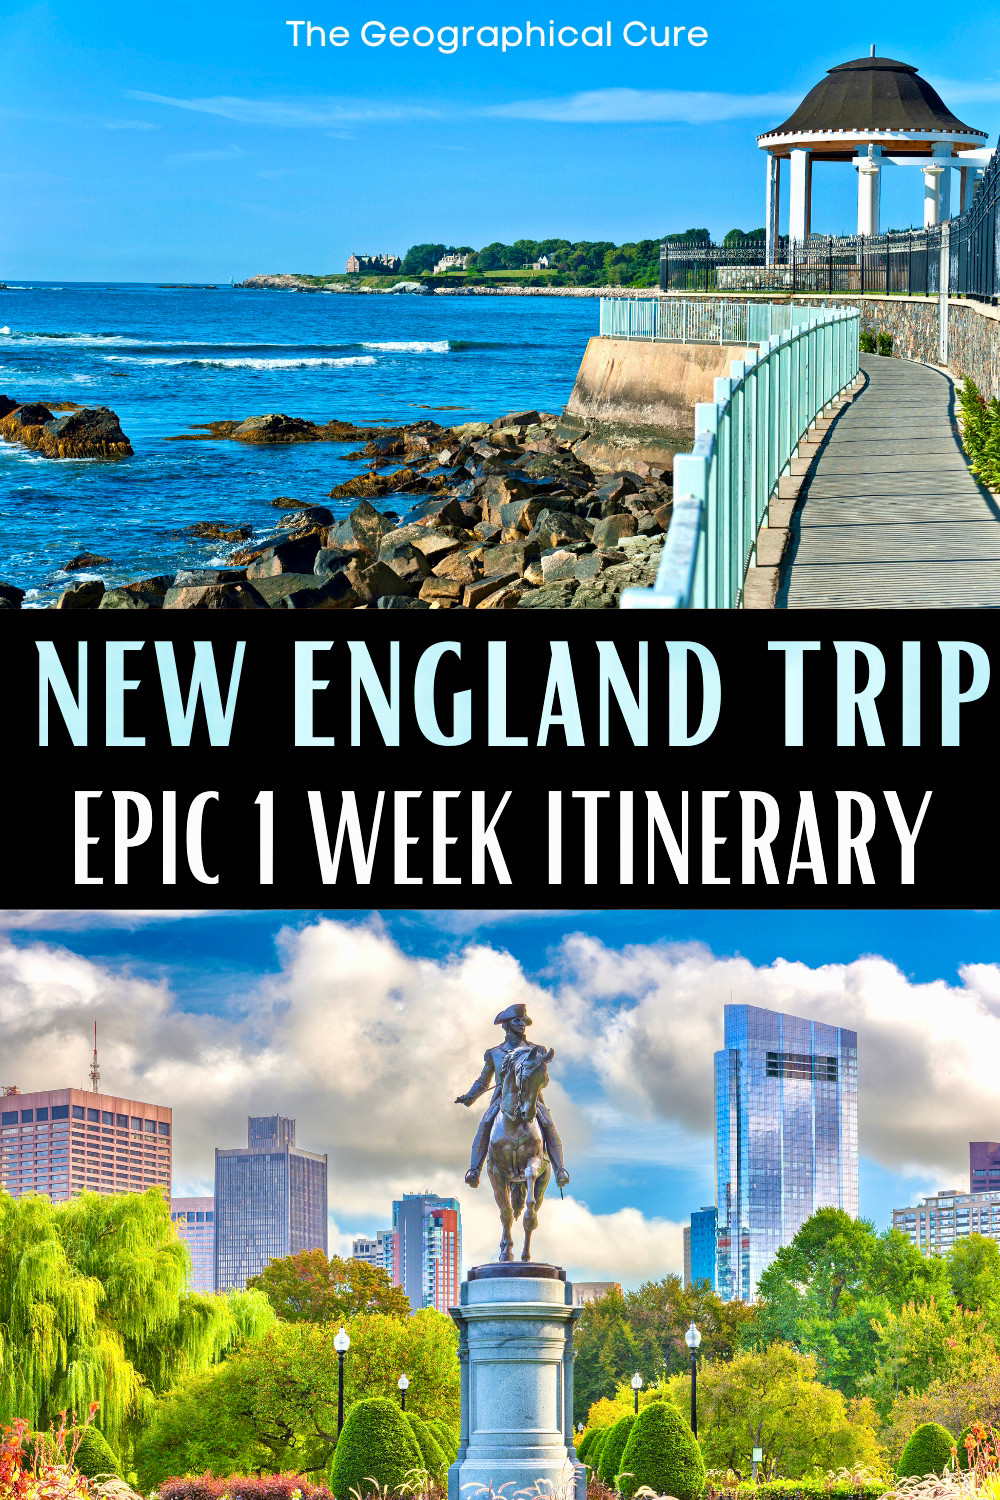 one week road trip itinerary for New England